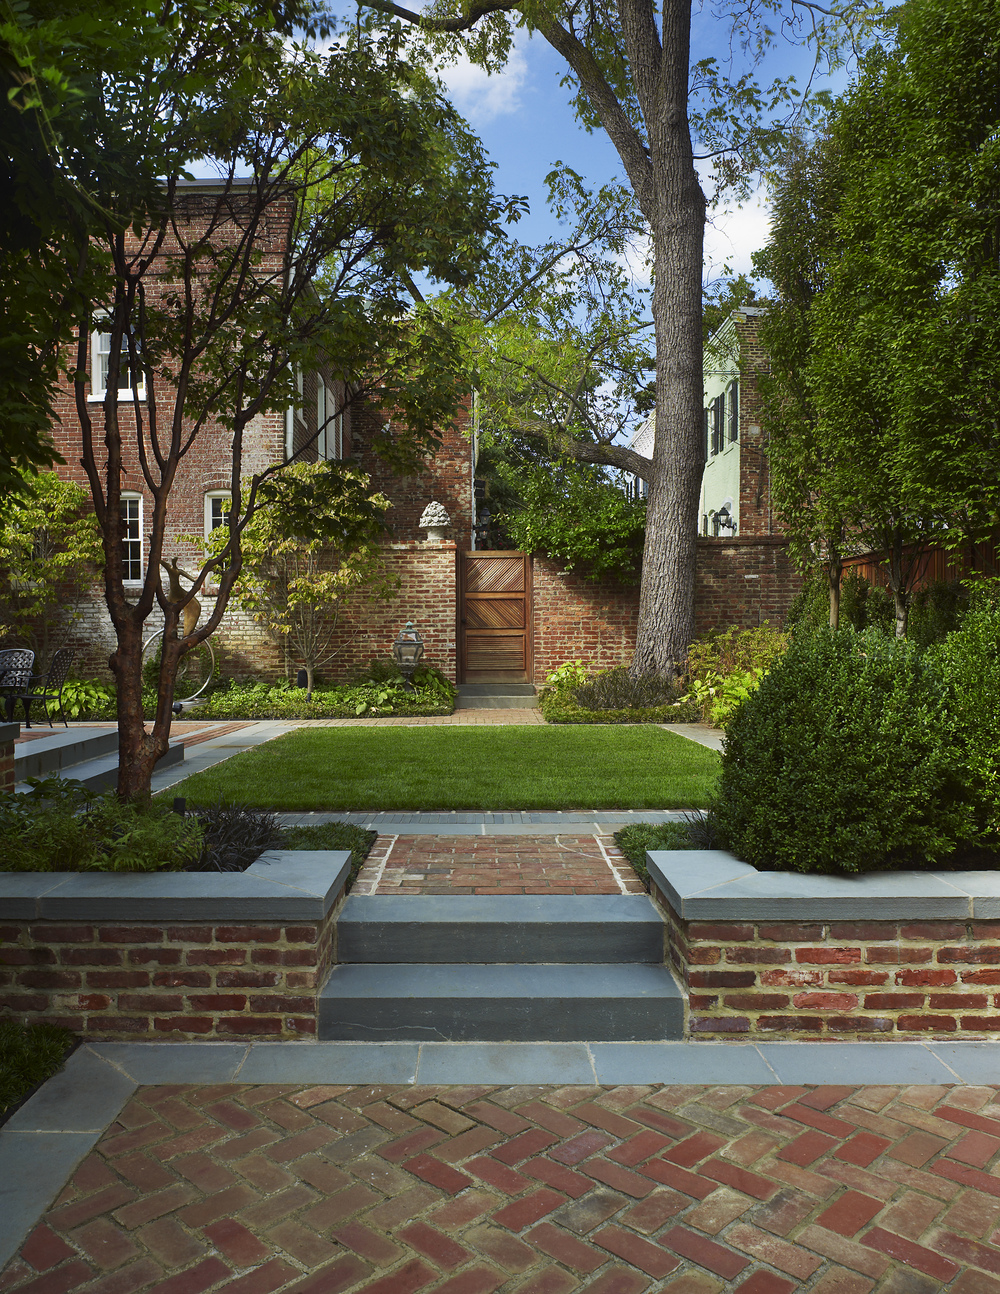 Project Location:  Washington, DC (Georgetown)  Completion:   2008  Landscape Contractors:  Quarry Aquatics, Evergro Landscaping  Project Architect:  Barnes Vanze  Primary Material Palette:   Bluestone, Brick, European Hornbeam  Photos By:  Allen Russ  Awards:  Honor Award, American Society of Landscape Architects Maryland Chapter, 2009